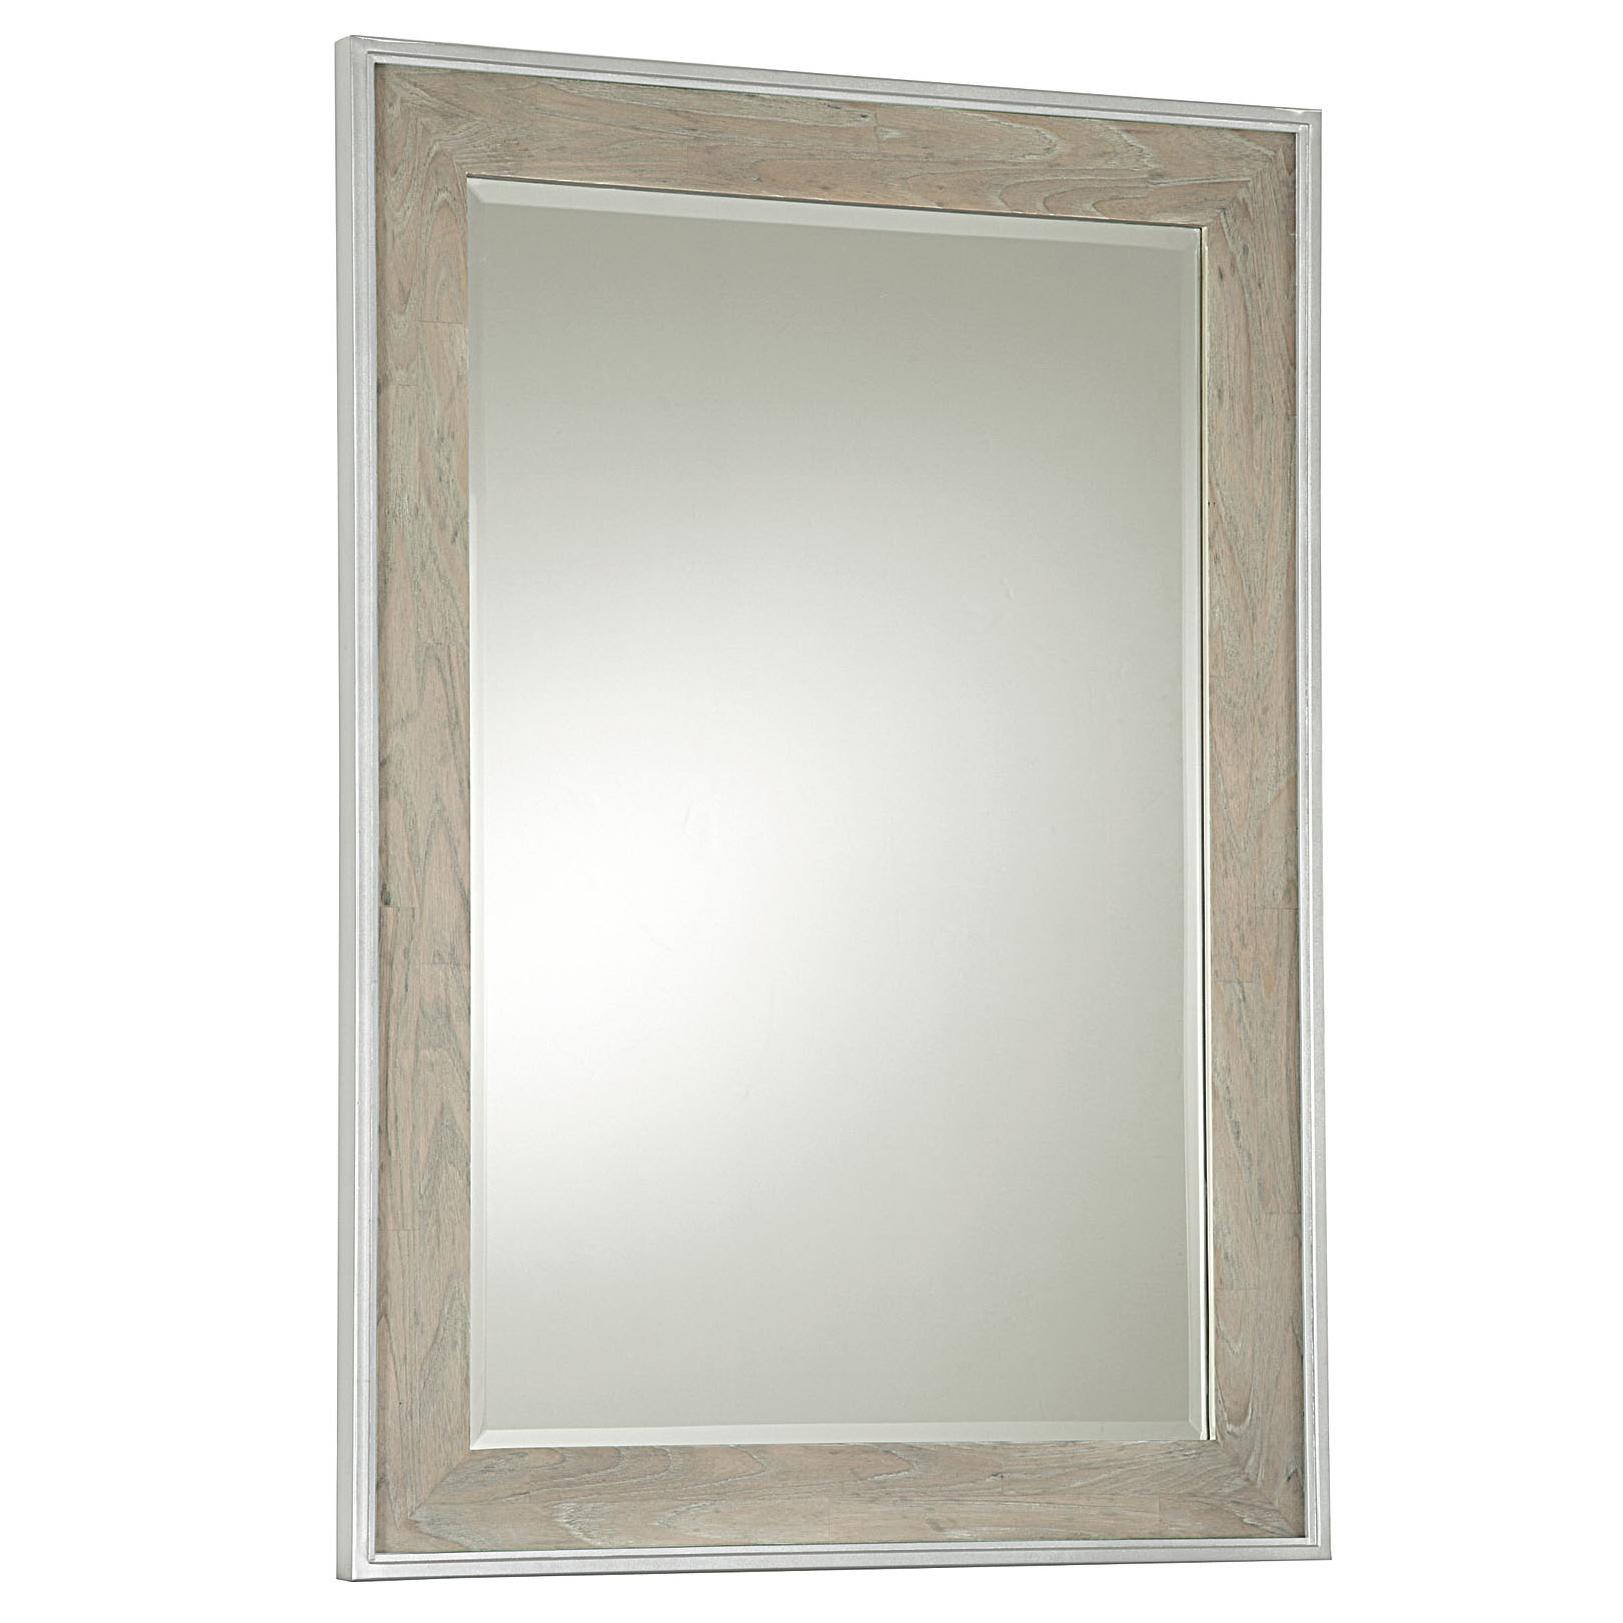 Universal Great Rooms - The Spencer Bedroom Mirror - Item Number: 21904M